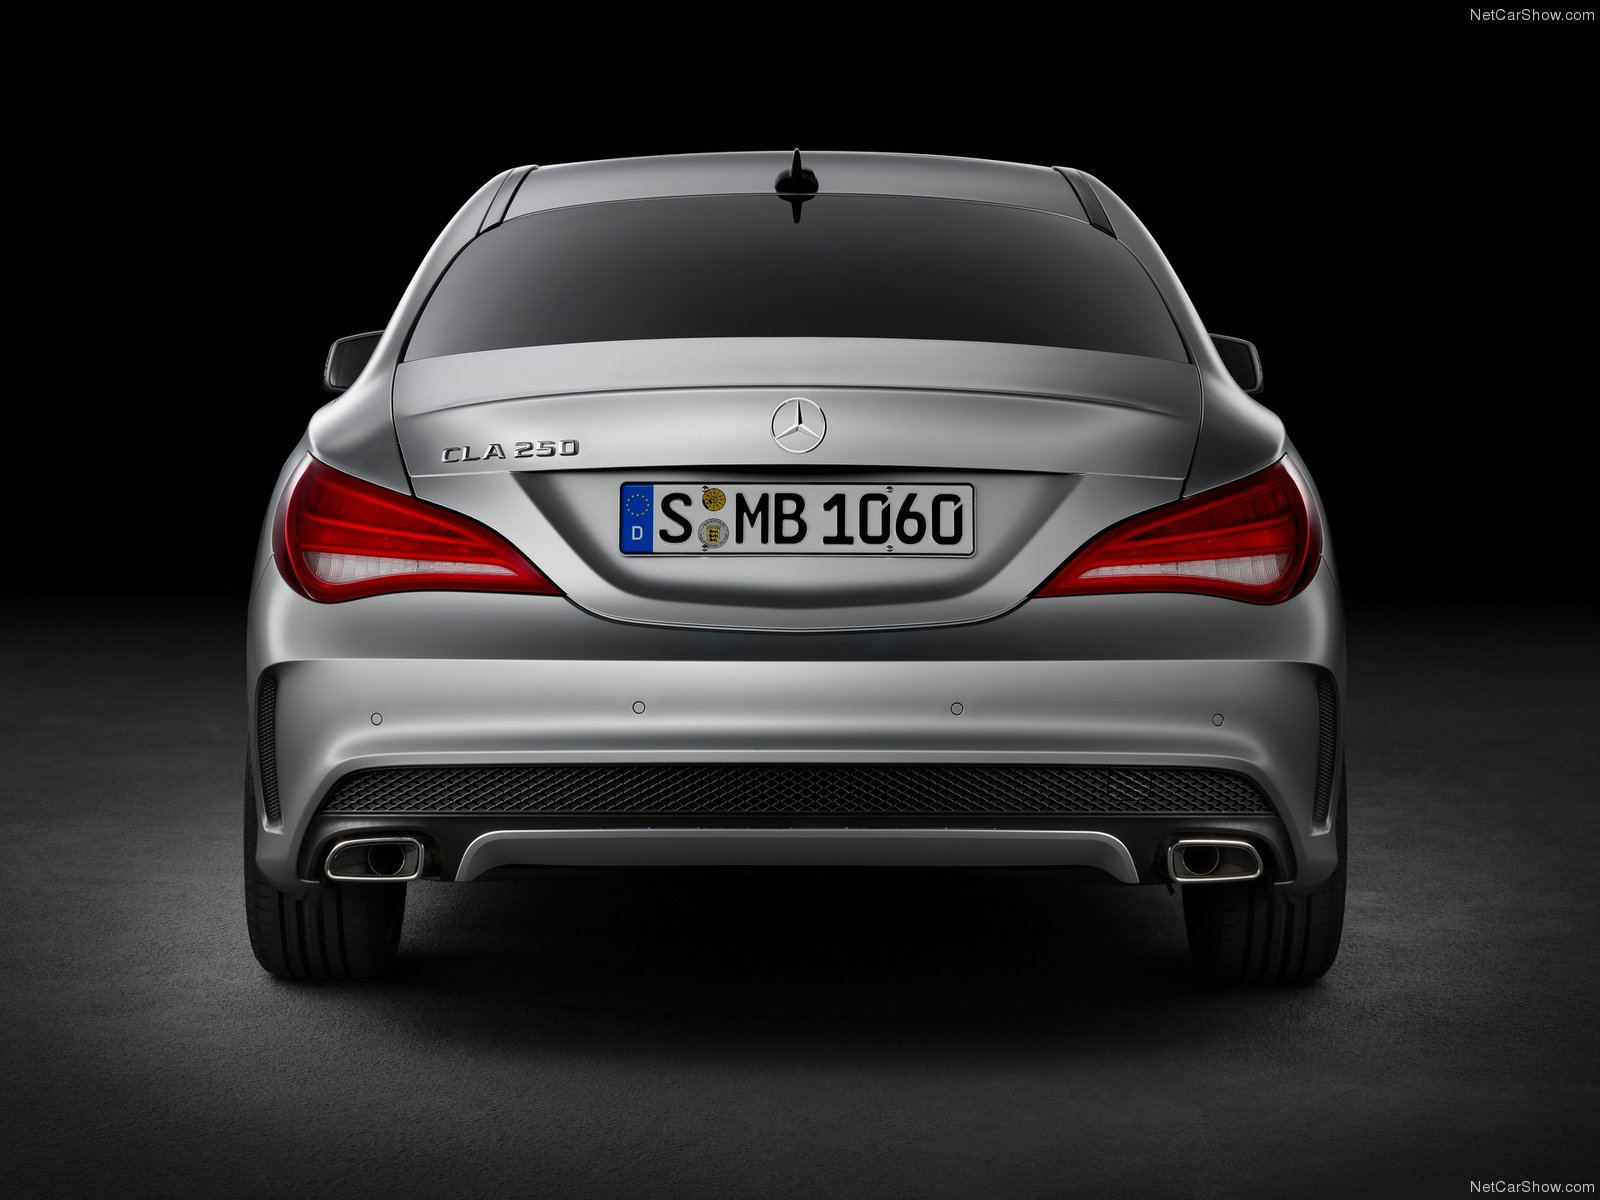 Mercedes CLS class 4 Door Coupe 2011